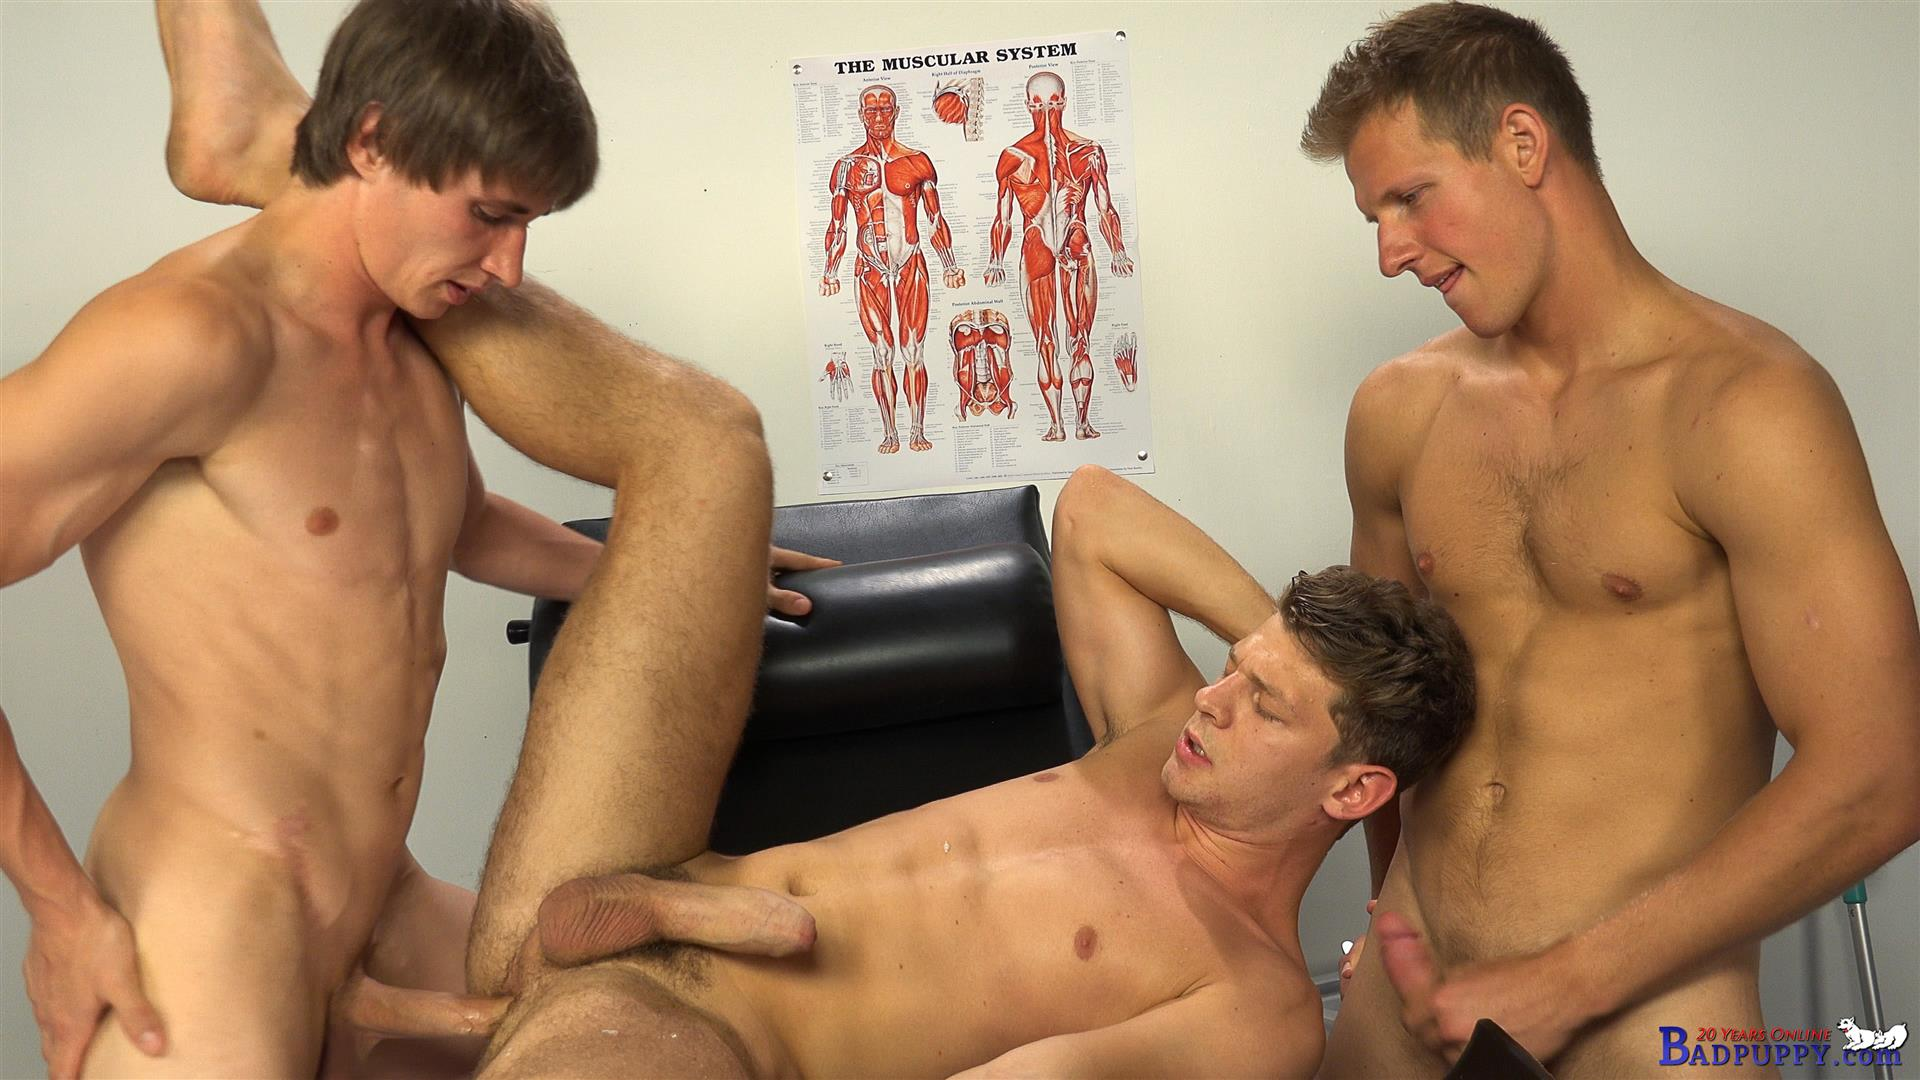 Badpuppy Dave Cargo and Robin Valej and Rosta Benecky Uncut Cock Bareback Amateur Gay Porn 33 Czech Twinks Playing Doctor With Their Bareback Uncut Cocks